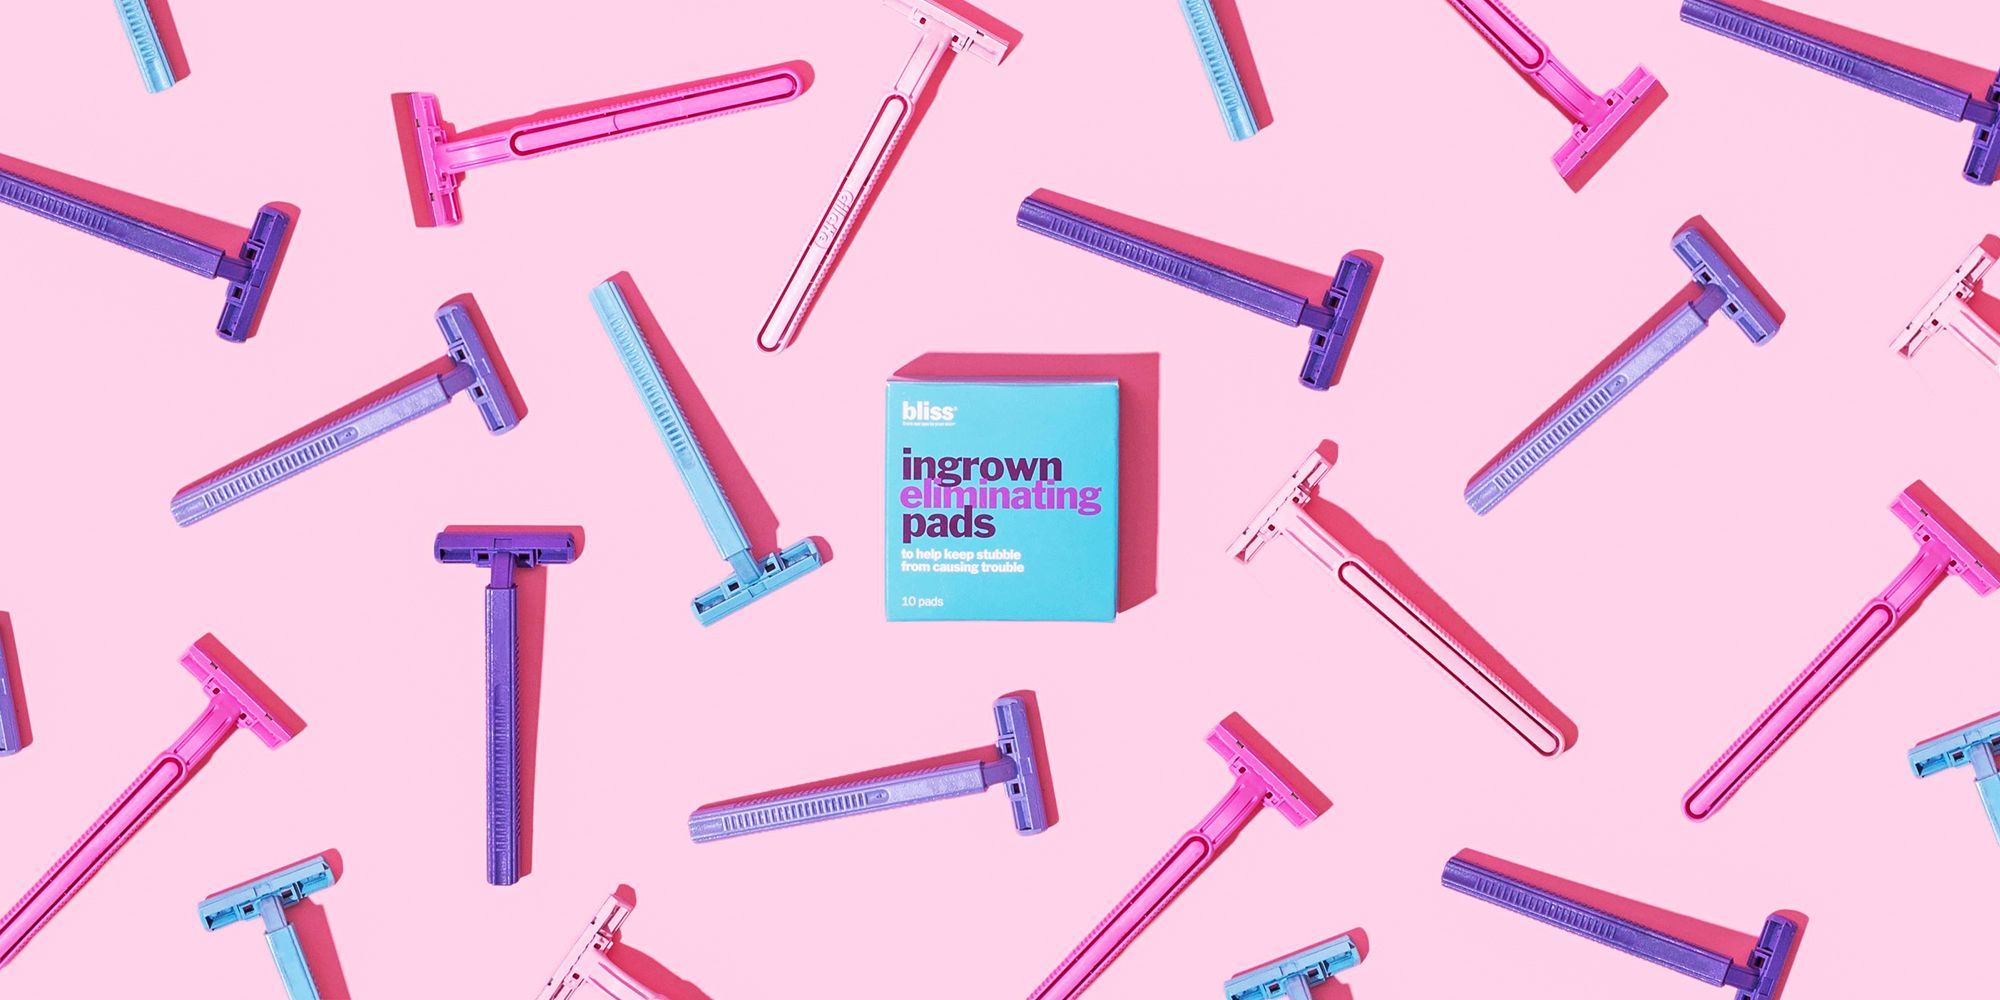 10 Best Ingrown Hair Treatments to Use in 2018 - Products